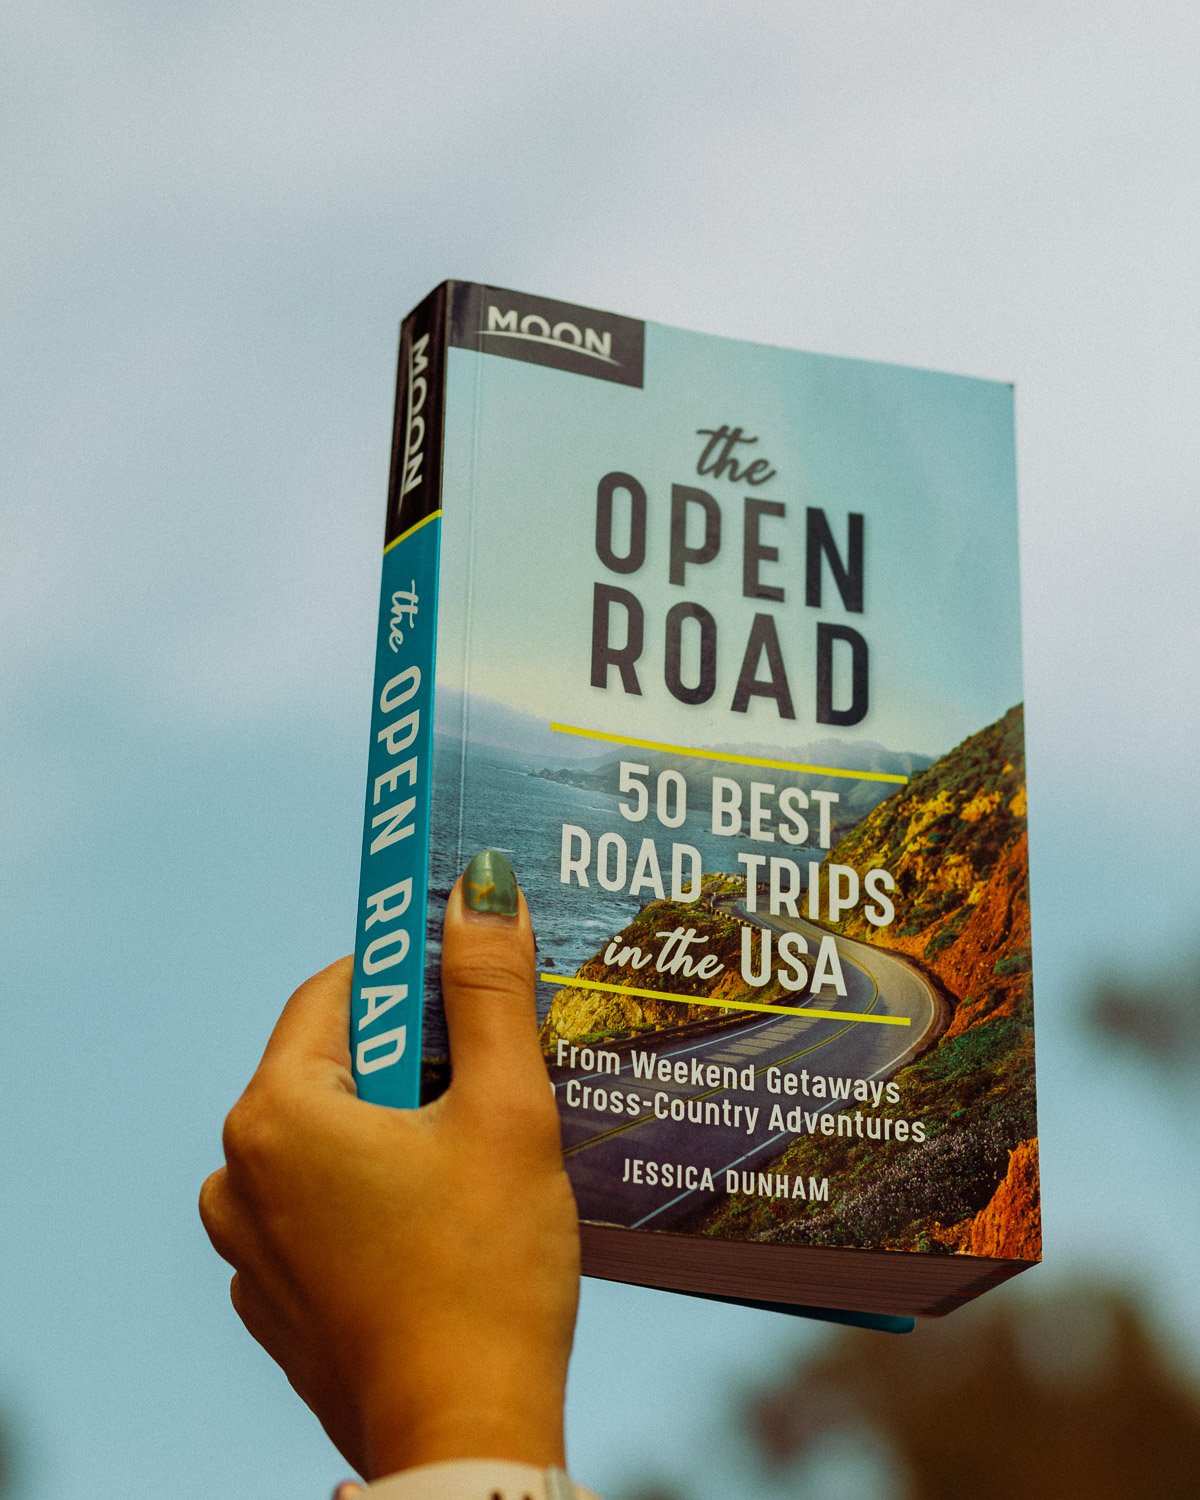 Rachel Off Duty: A Person Holds a Moon Travel Guides Road Trip Guidebook Up to the Sky